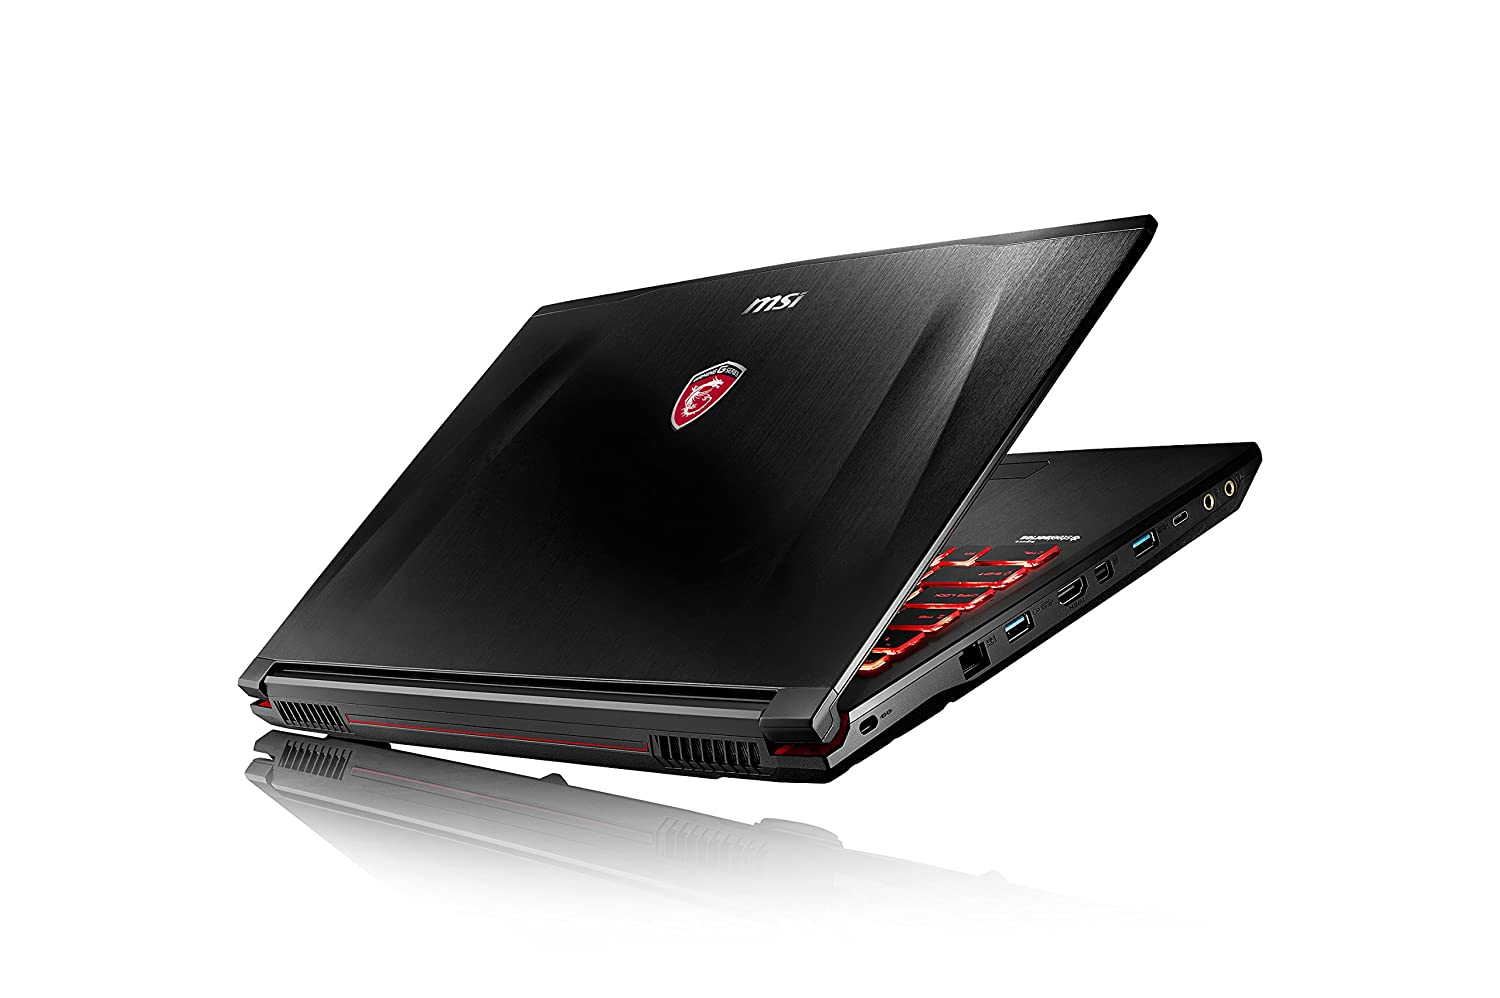 7 Best laptops for programming and CAD work as of 2019 - Slant